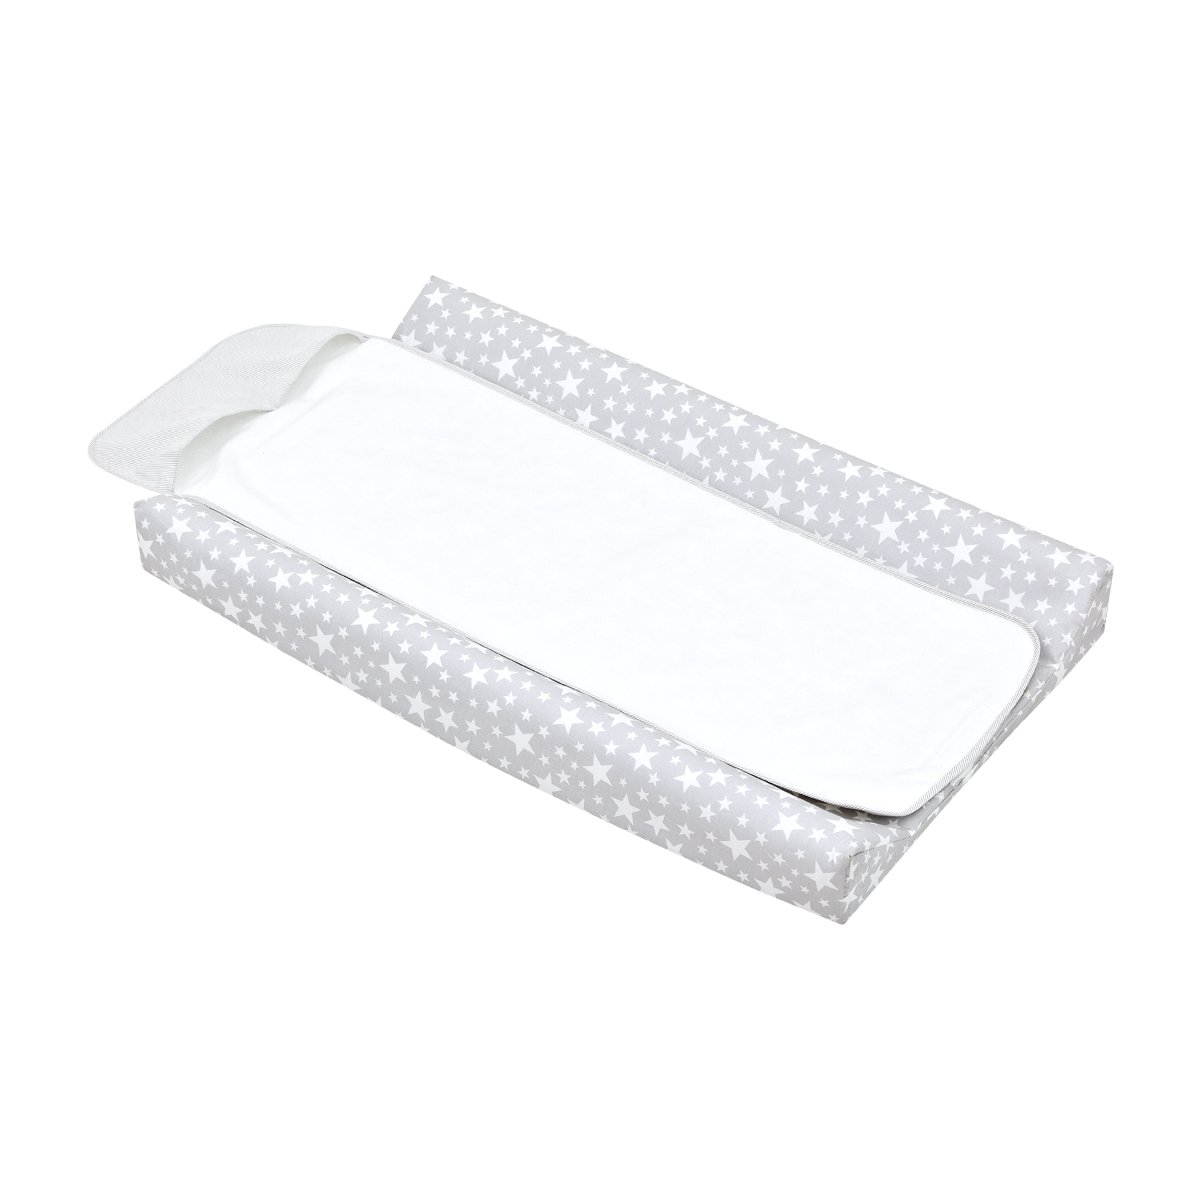 Cambrass Nappy Changing Mat (47 x 80 cm, Star Grey) 35082.0